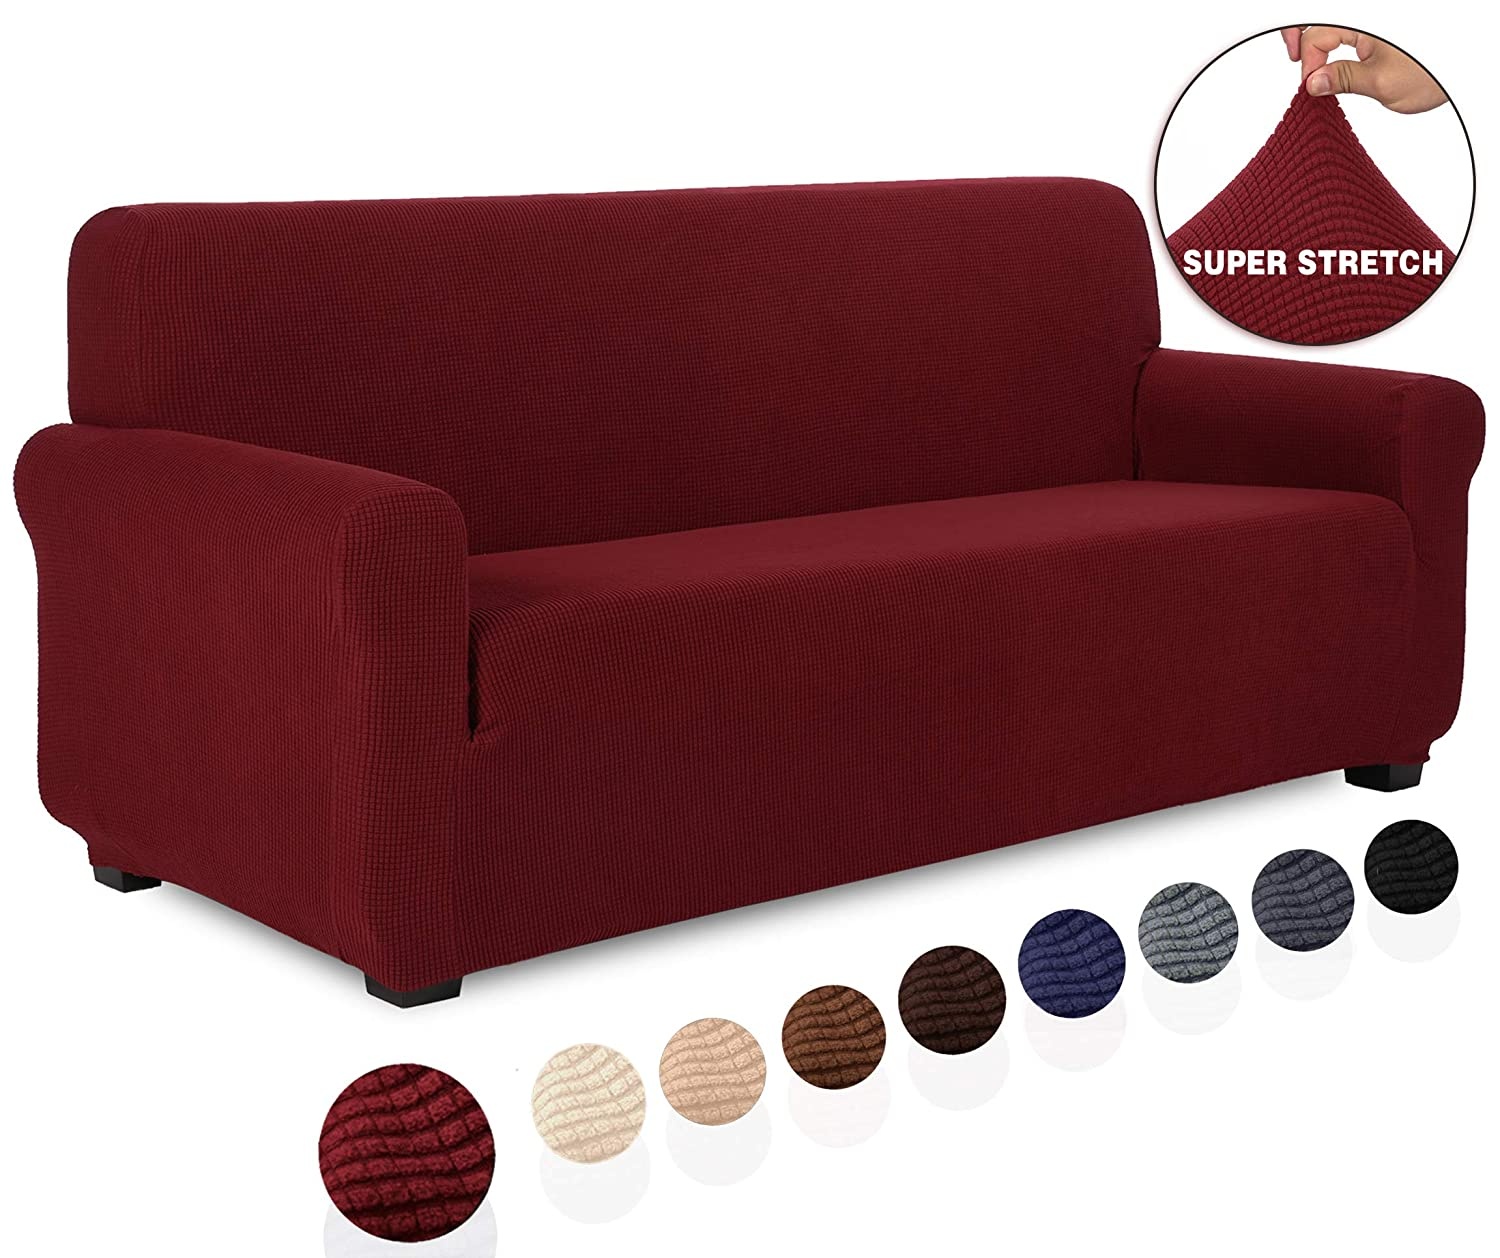 TIANSHU Stretch Jacquard Couch Cover, 1-Piece Couch Cover for Sofa, 3 Cushion Sofa Slipcover for Living Room, Soft/Durable/Stay in Place Furniture Covers (Sofa, Dark Wine)